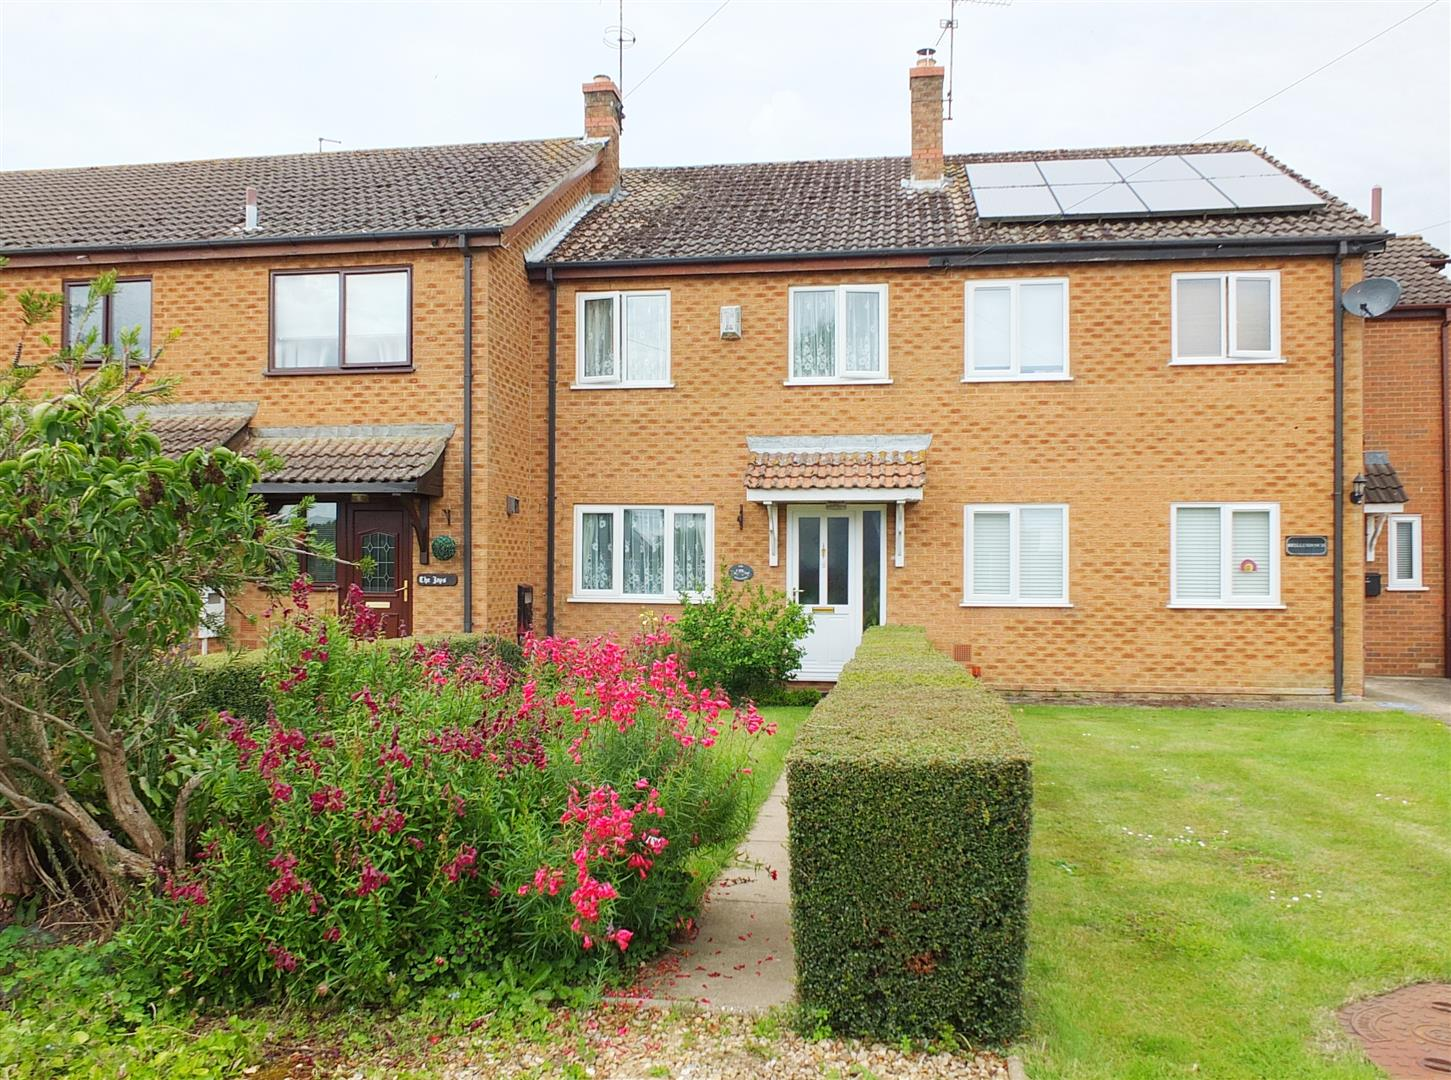 2 bed terraced house for sale in Lutton Spalding, PE12 9LQ, PE12